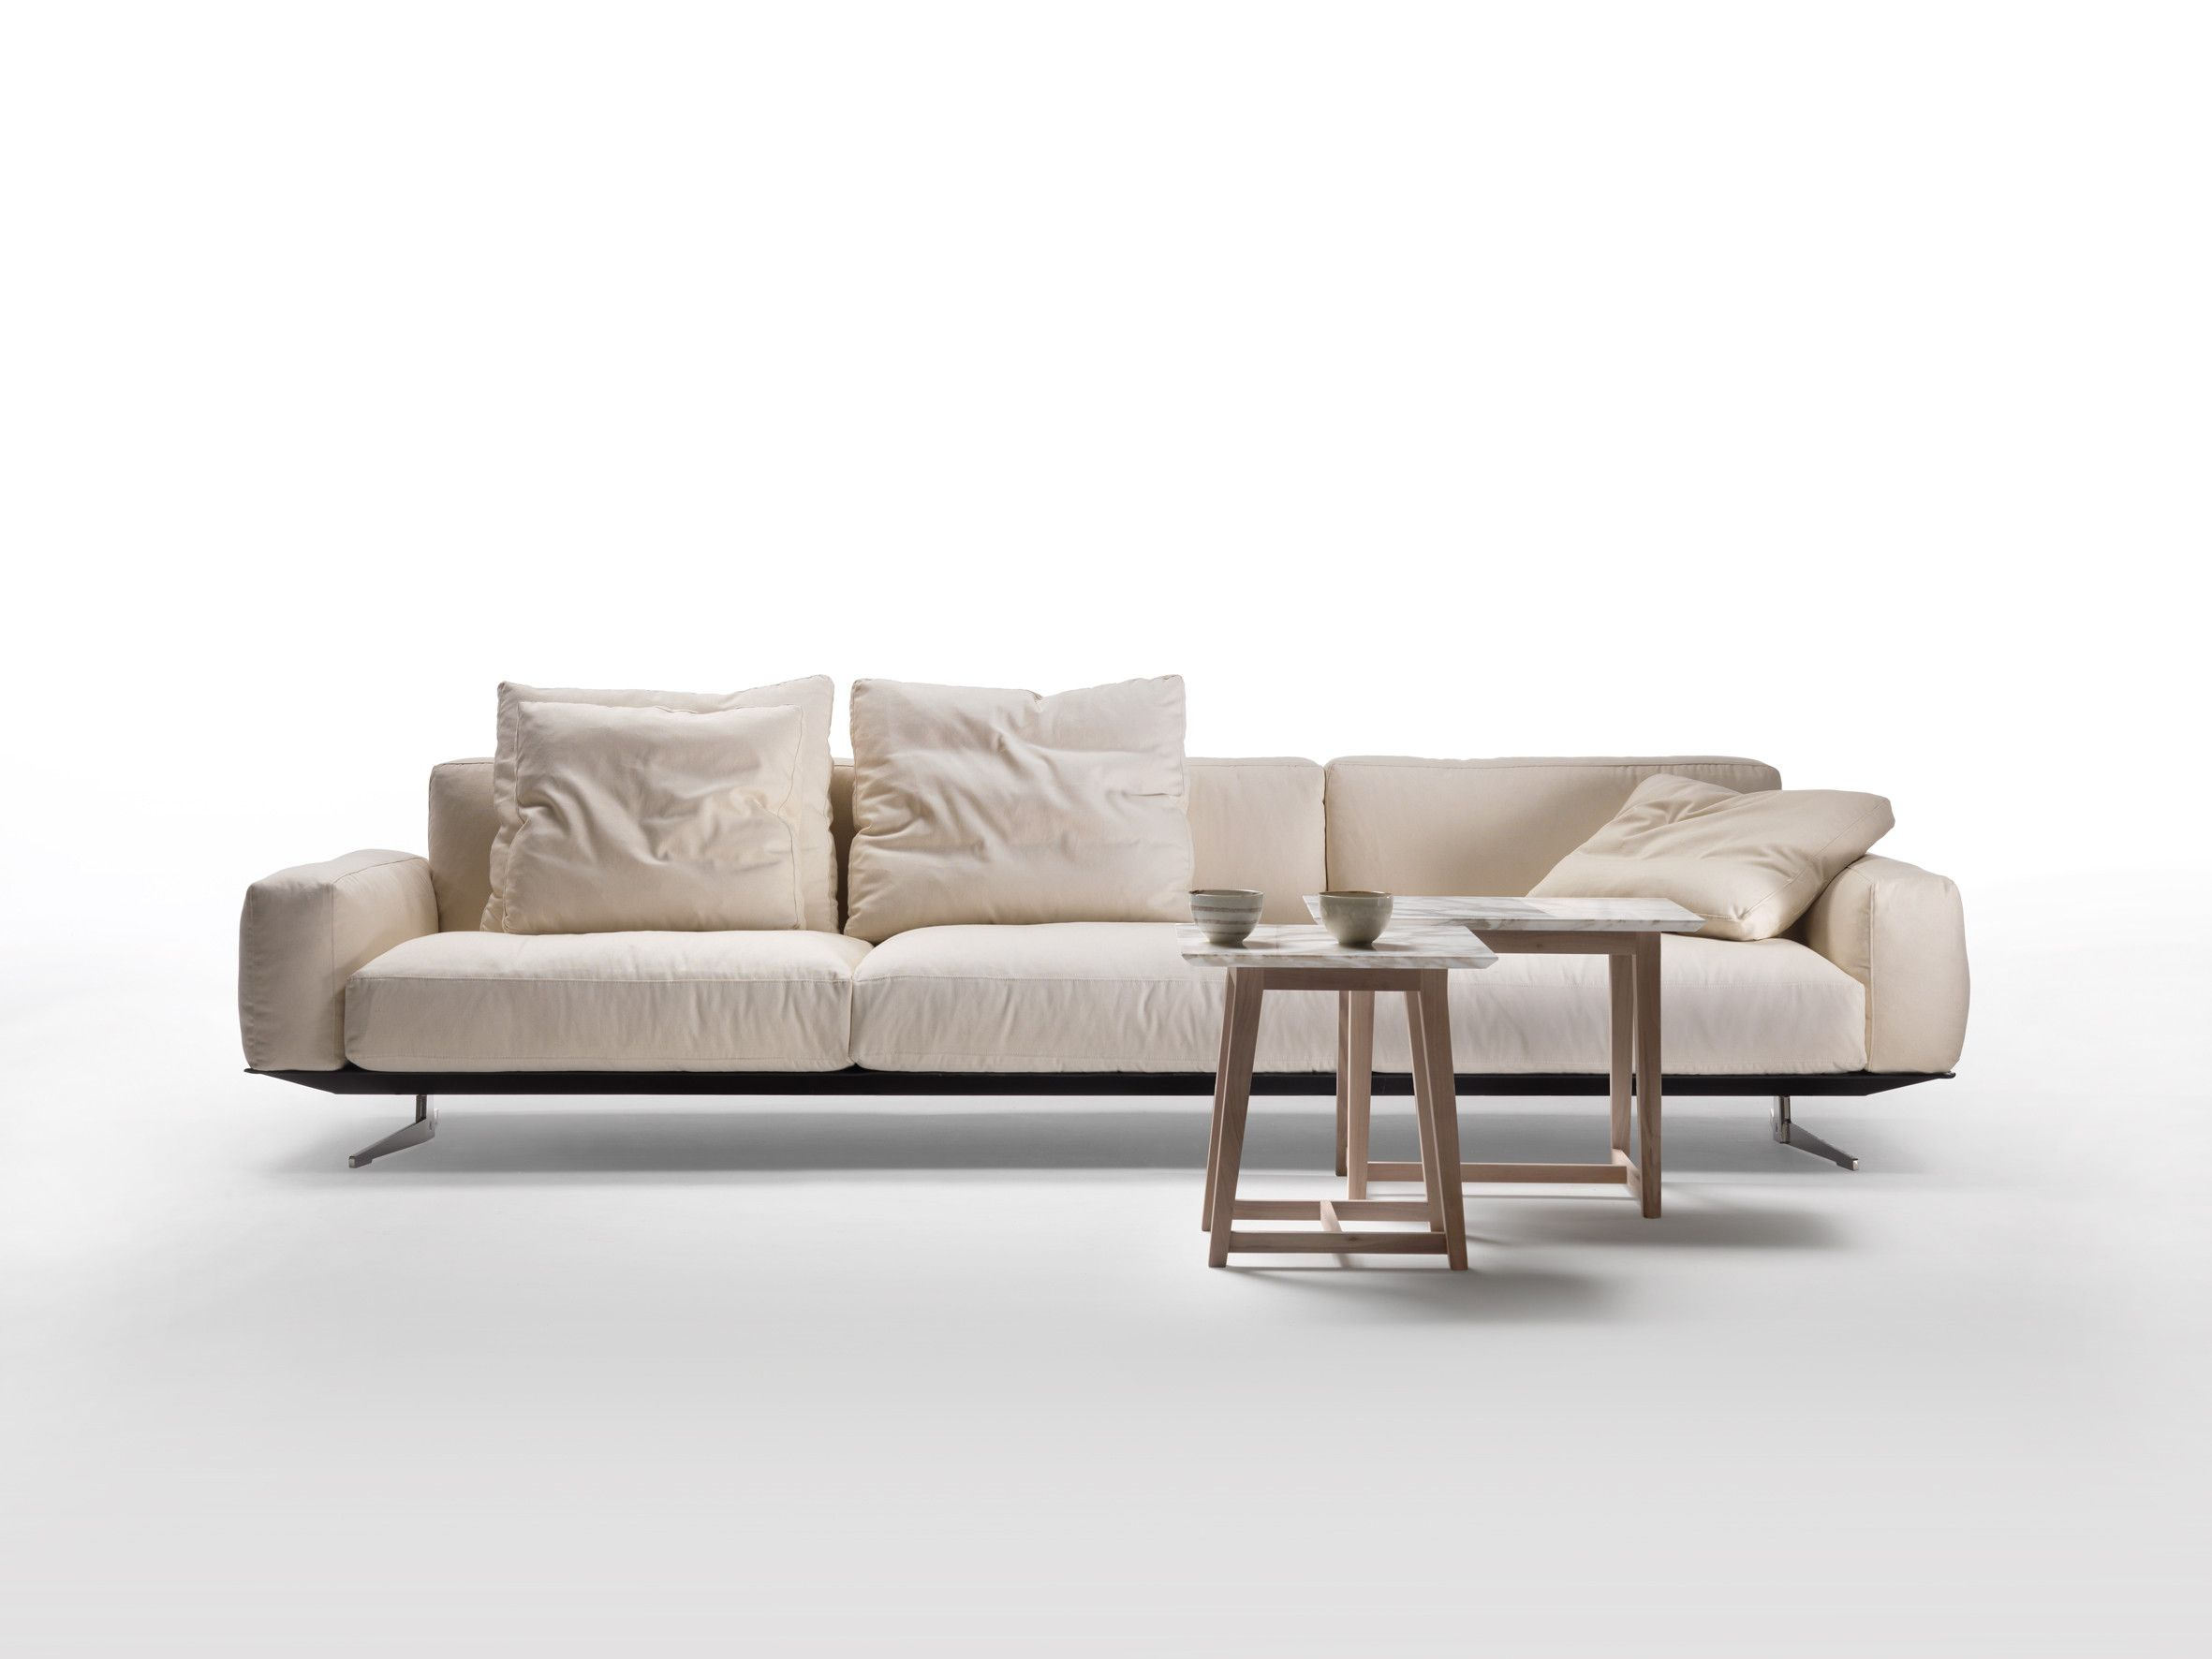 9 Soft dream sectional version Products FLEXFORM